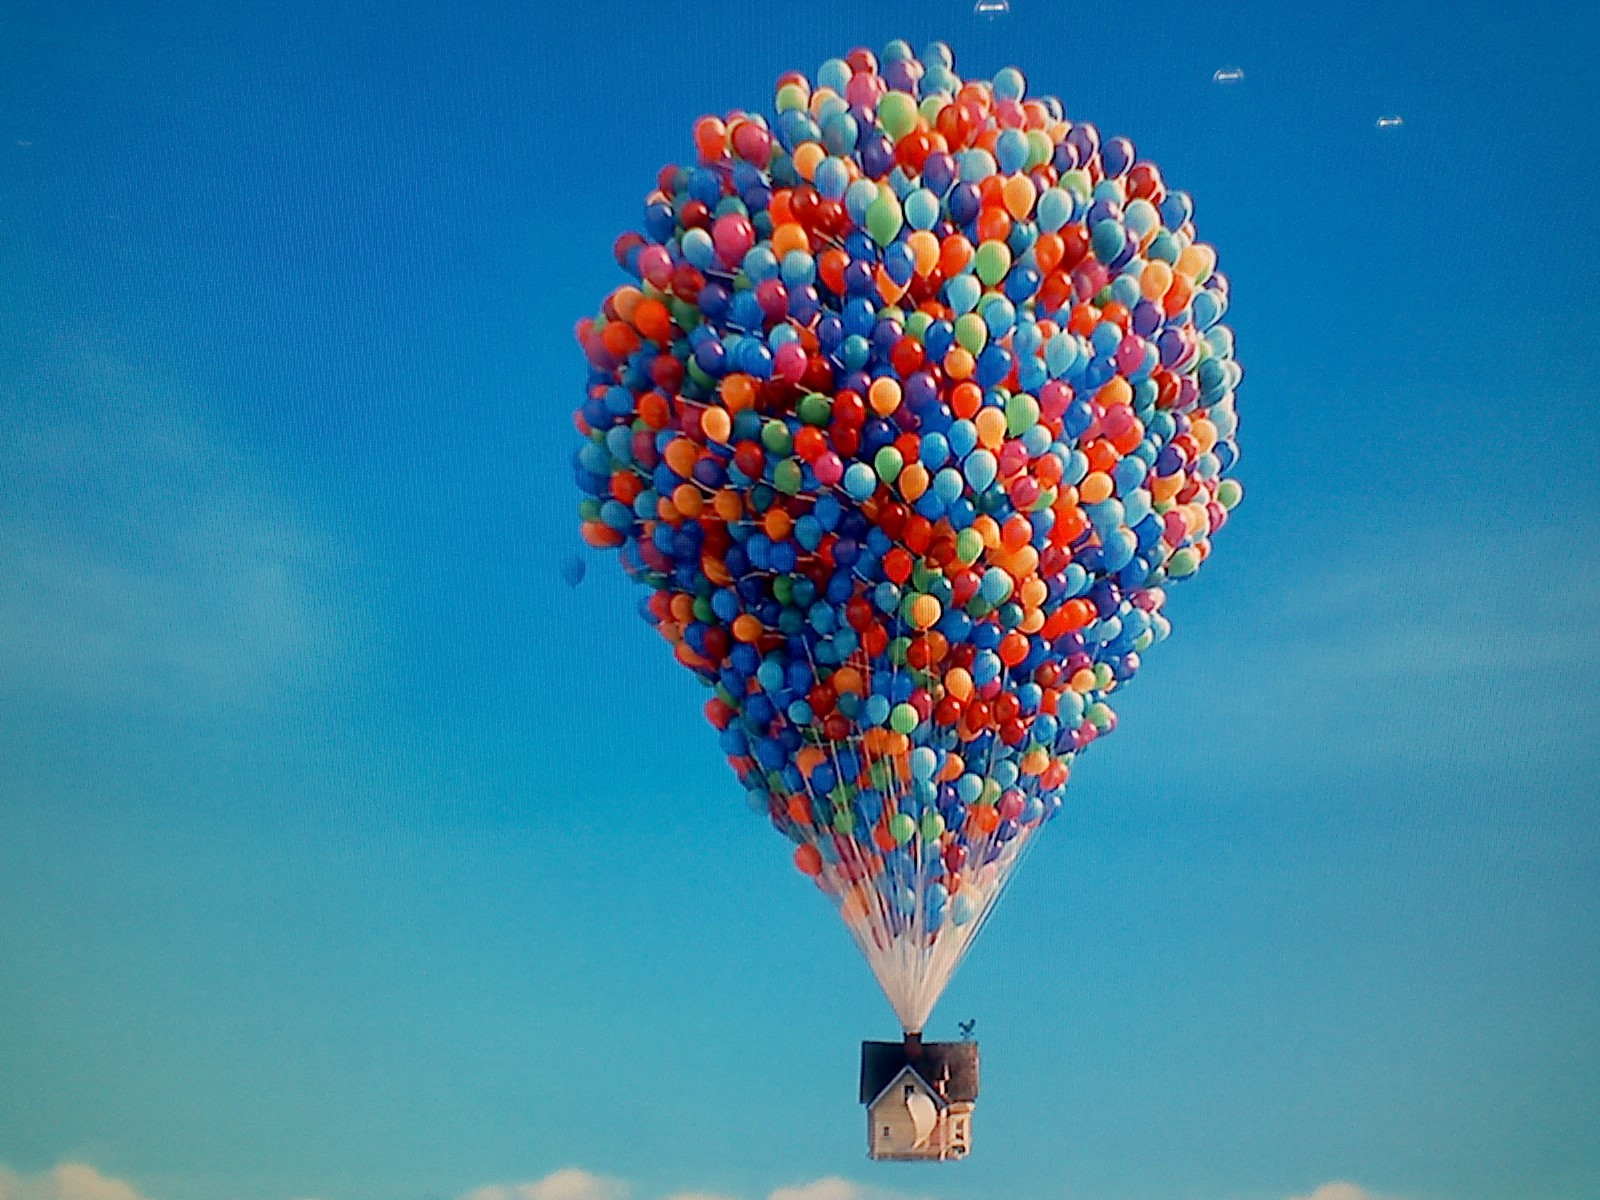 Funny Wallpapers For Desktop Hd Bloon In Air Hd Desktop Wallpapers Hd Wallpaper